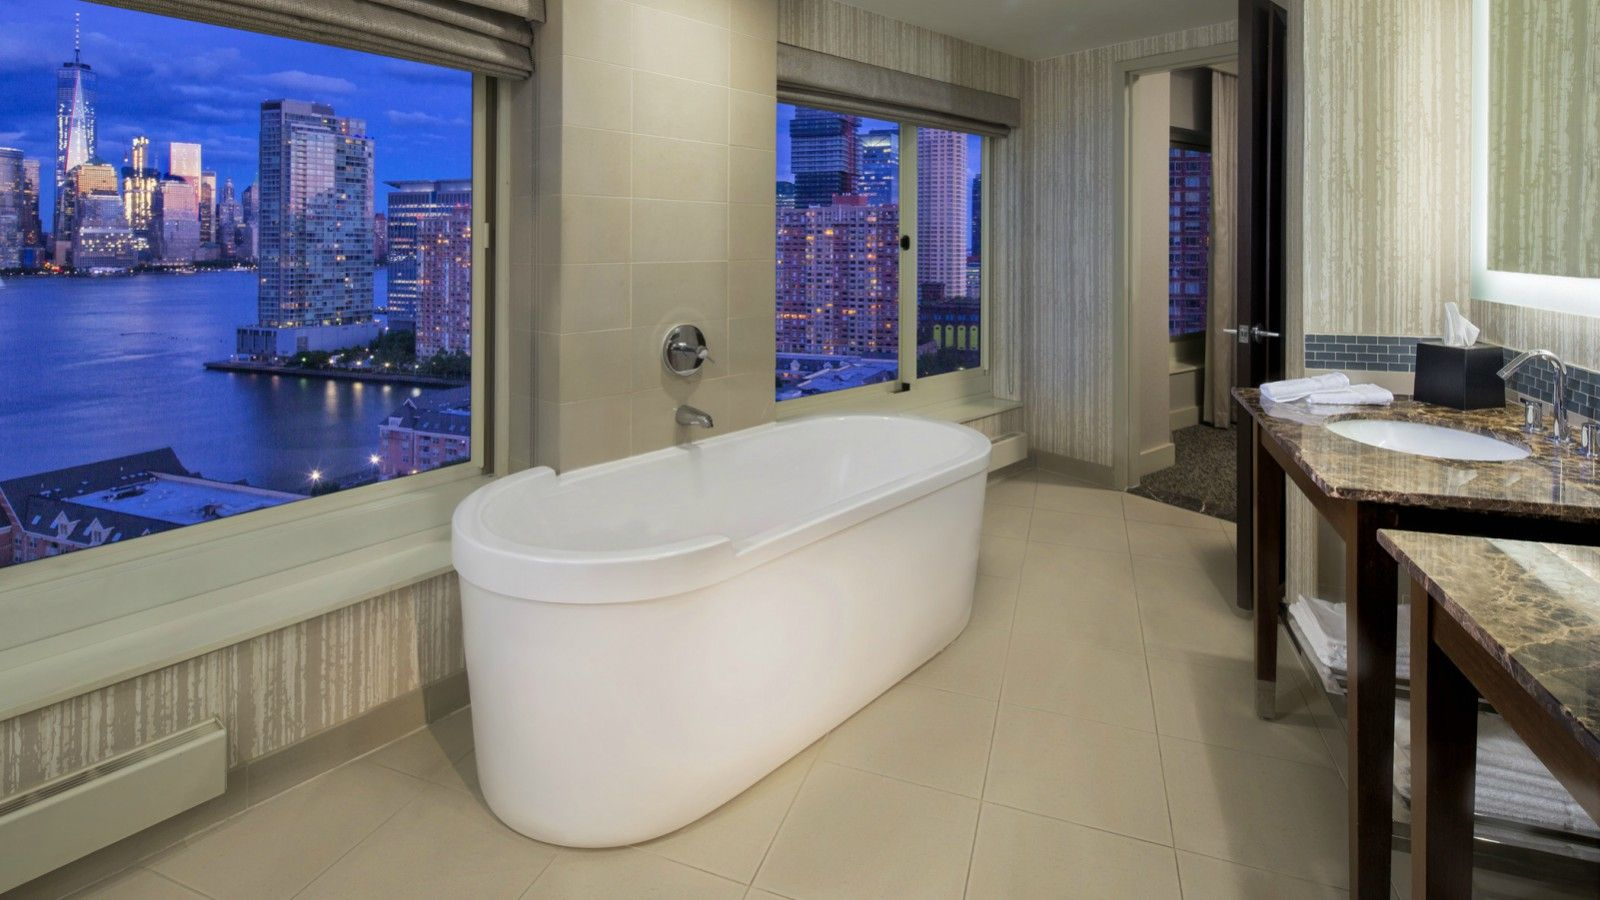 Bathroom Renovation Jersey City reimagined for a better you | the westin jersey city - newport